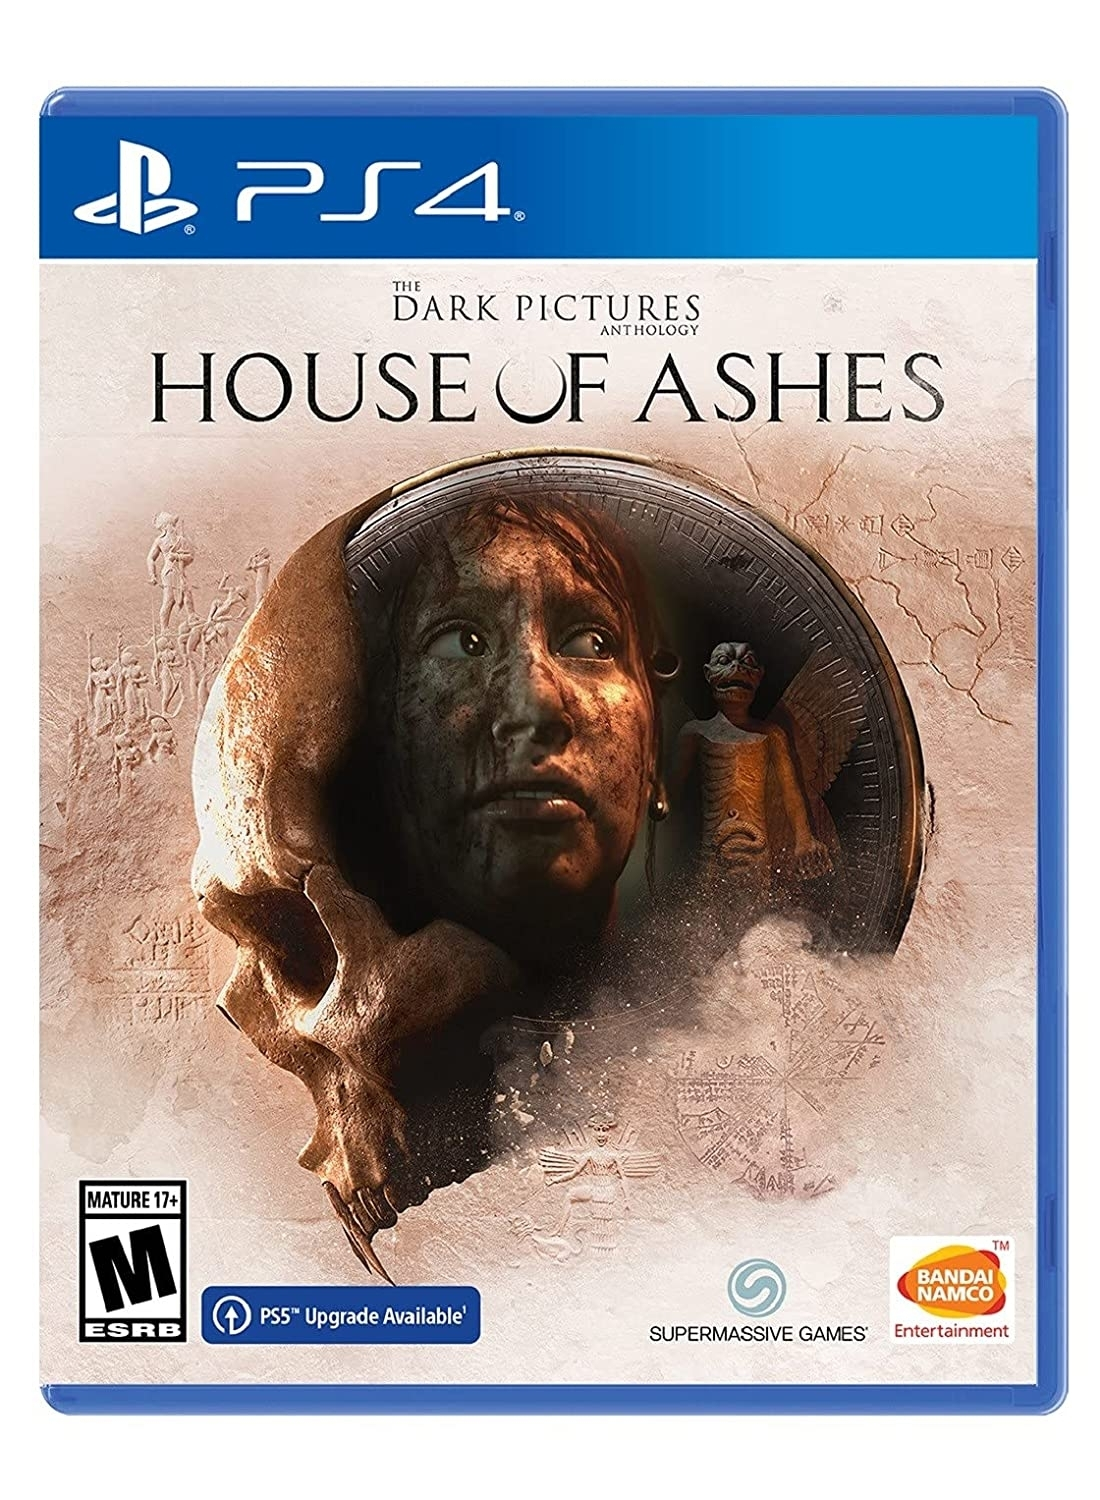 The Dark Pictures Anthology House of Ashes PS4 - PS5 Upgrade - Atacado dos Jogos